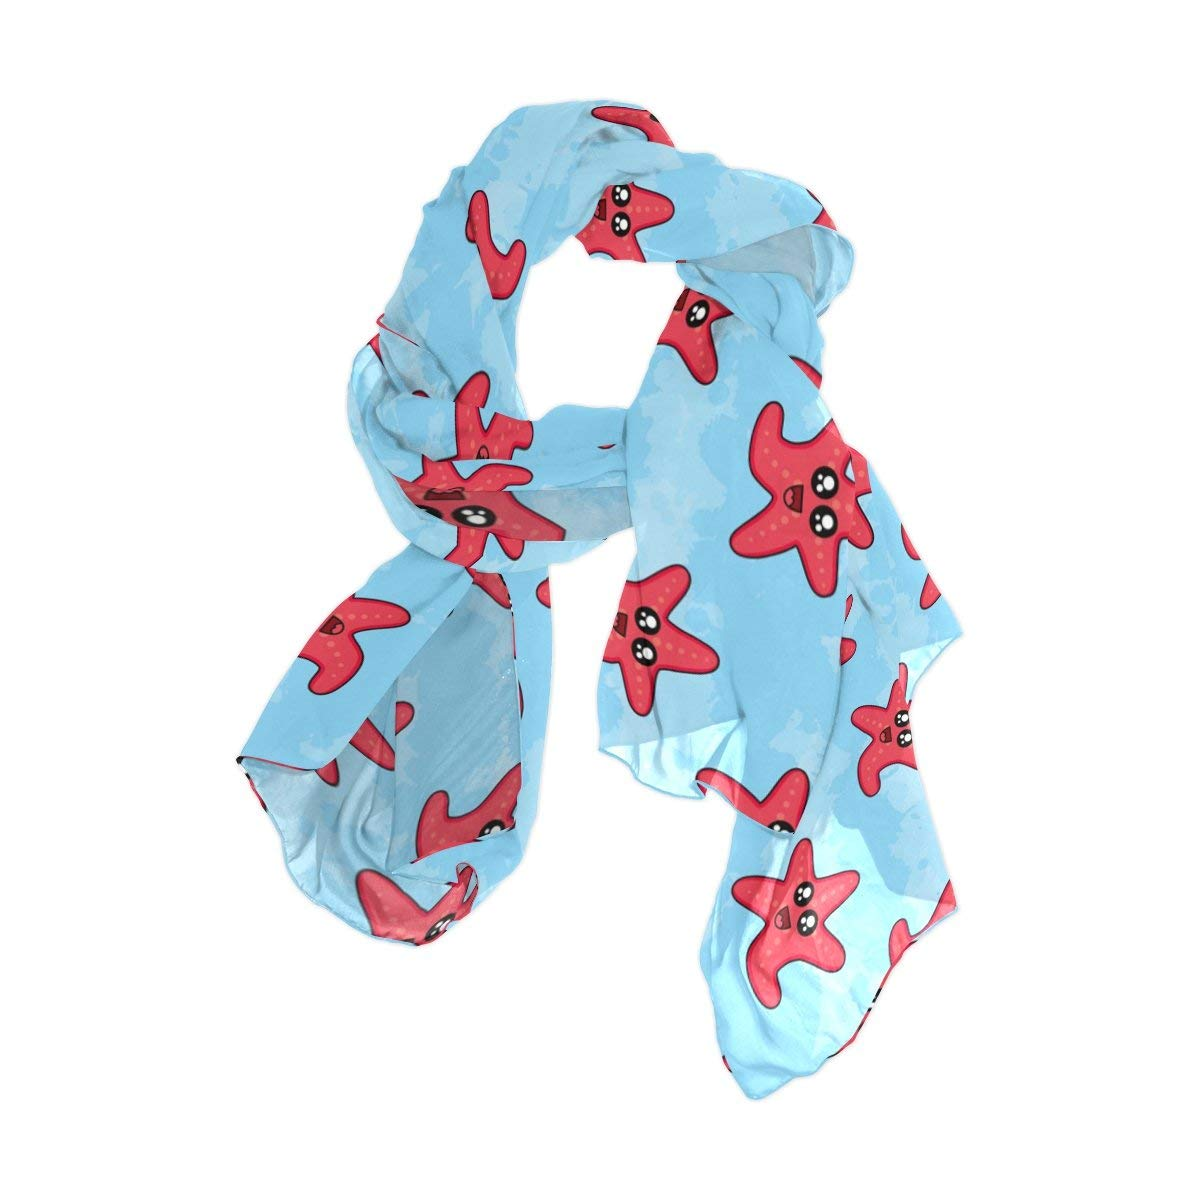 Cartoon Seaweed World Fish Unisex Fashion Quick-Drying Microfiber Headdress Outdoor Magic Scarf Neck Neck Scarf Hooded Scarf Super Soft Handle